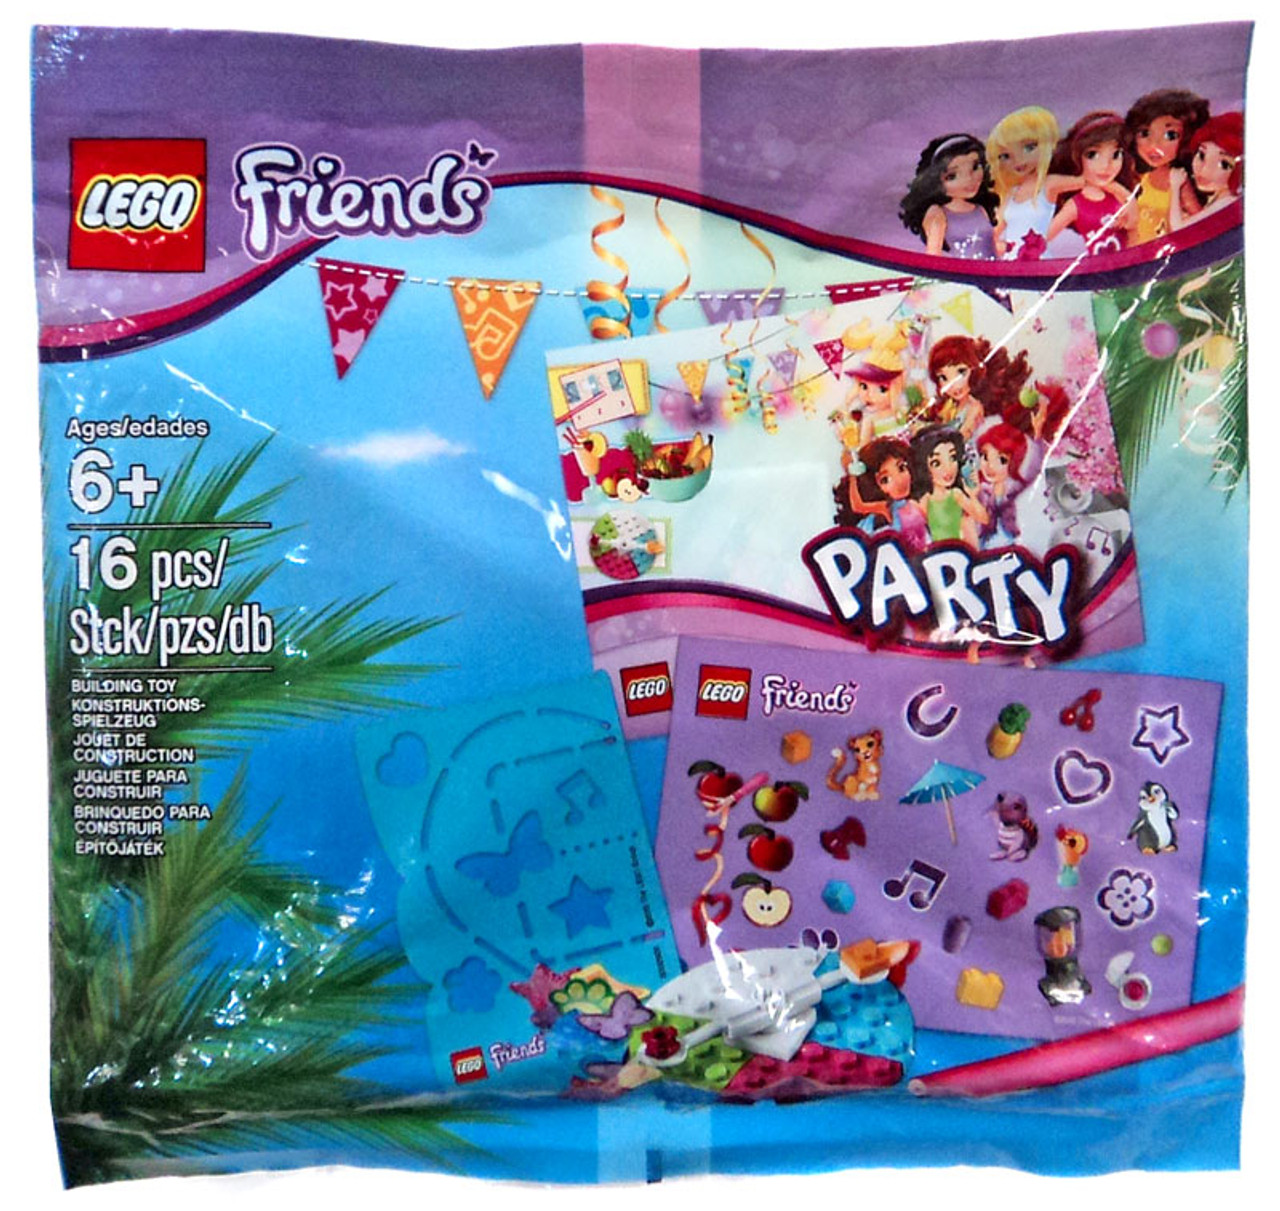 LEGO Friends Party Mini Set 5002928 Bagged - ToyWiz